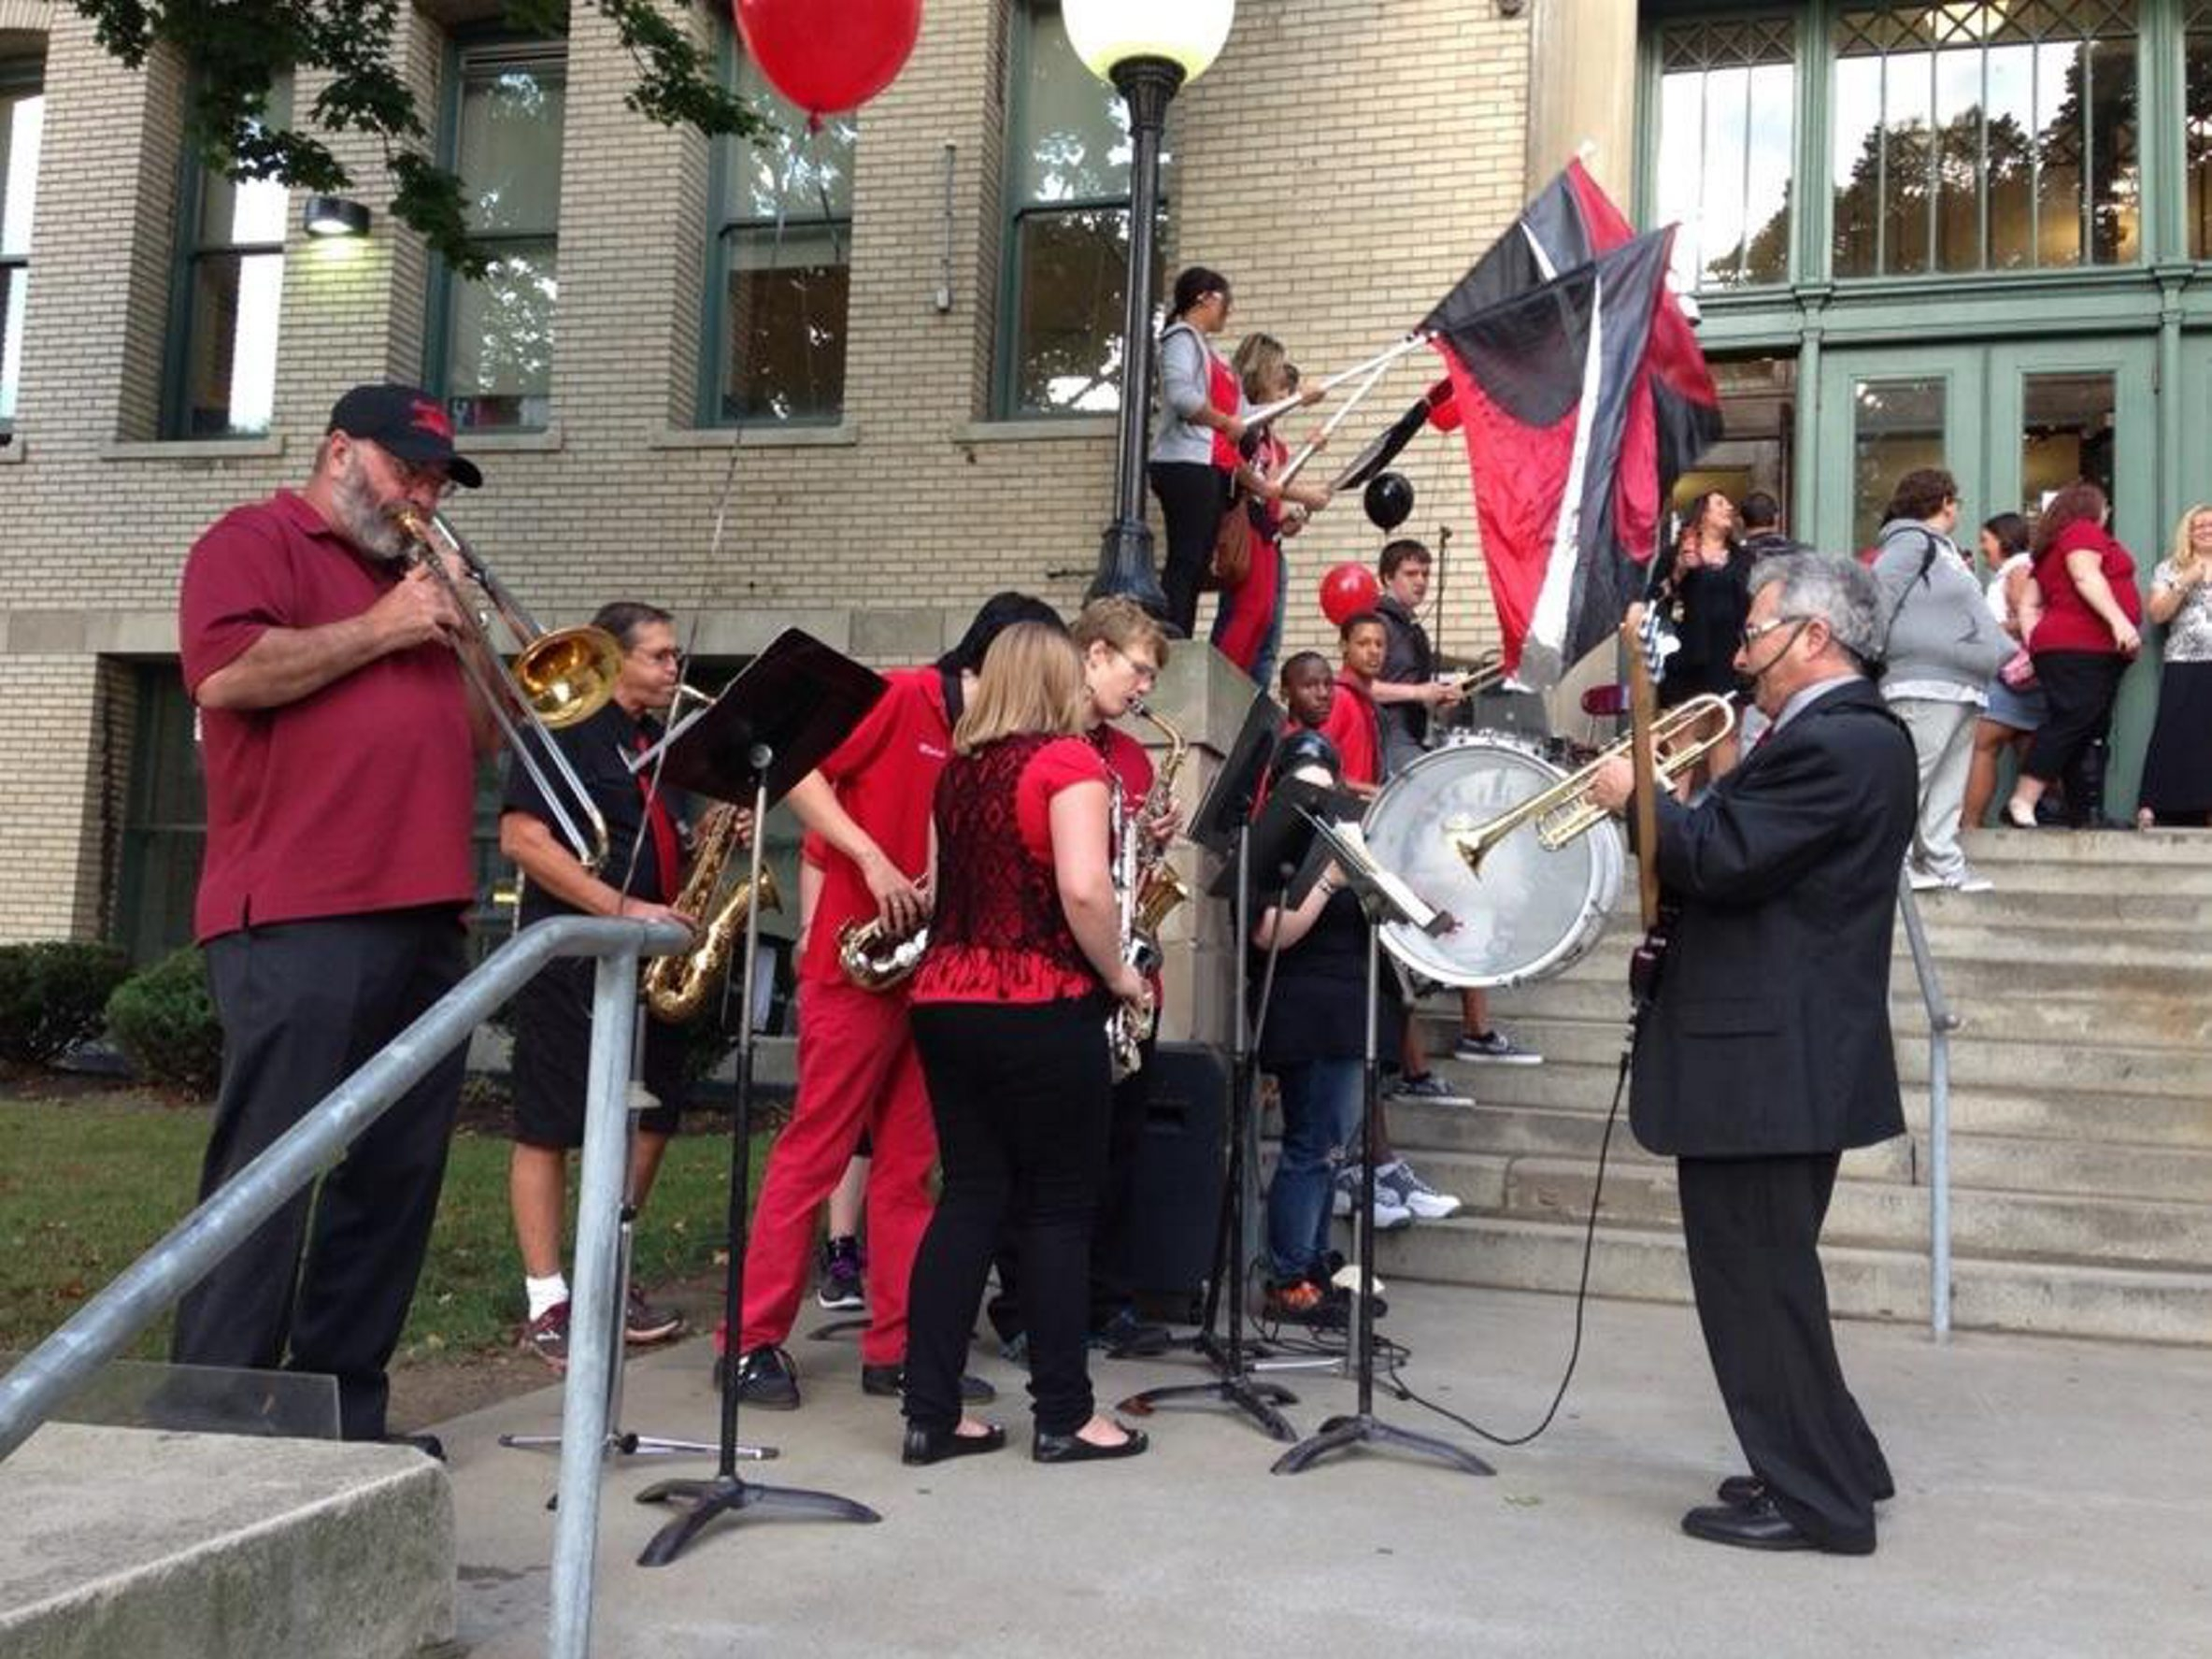 The South Park High School pep band greeted students on the first day of school this morning. The school is celebrating its 100th anniversary this year. (John Hickey/Buffalo News)